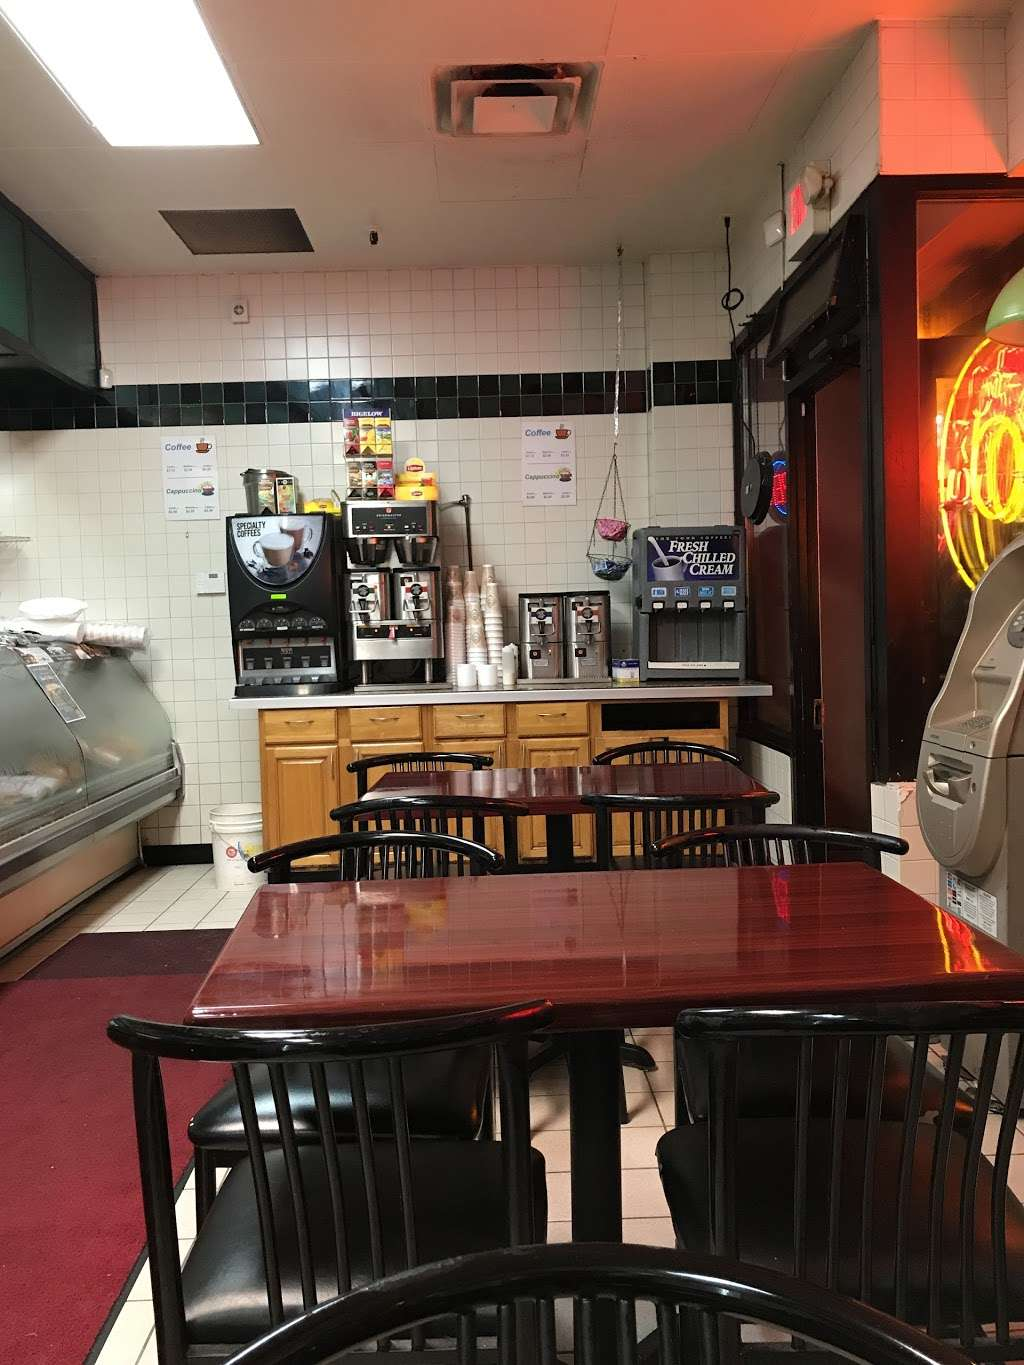 Goldbergs Bagels & Deli - bakery  | Photo 9 of 10 | Address: 777 Central Park Ave, Yonkers, NY 10704, USA | Phone: (914) 964-9224